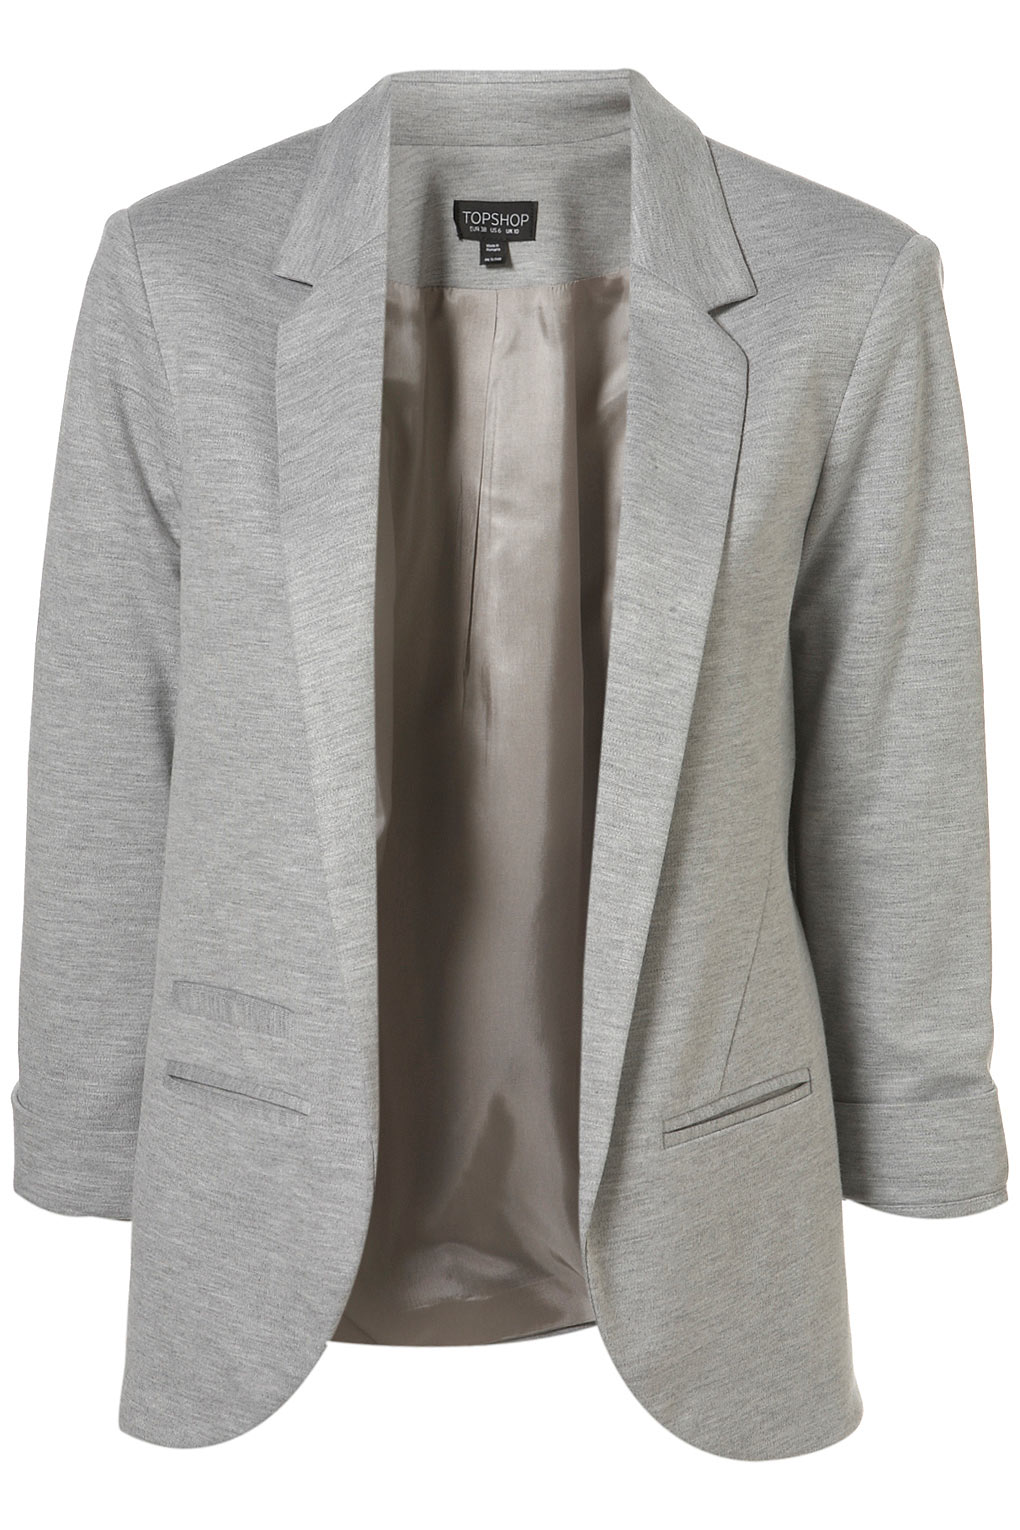 Free shipping and returns on Men's Grey Blazers & Sport Coats at 24software.ml